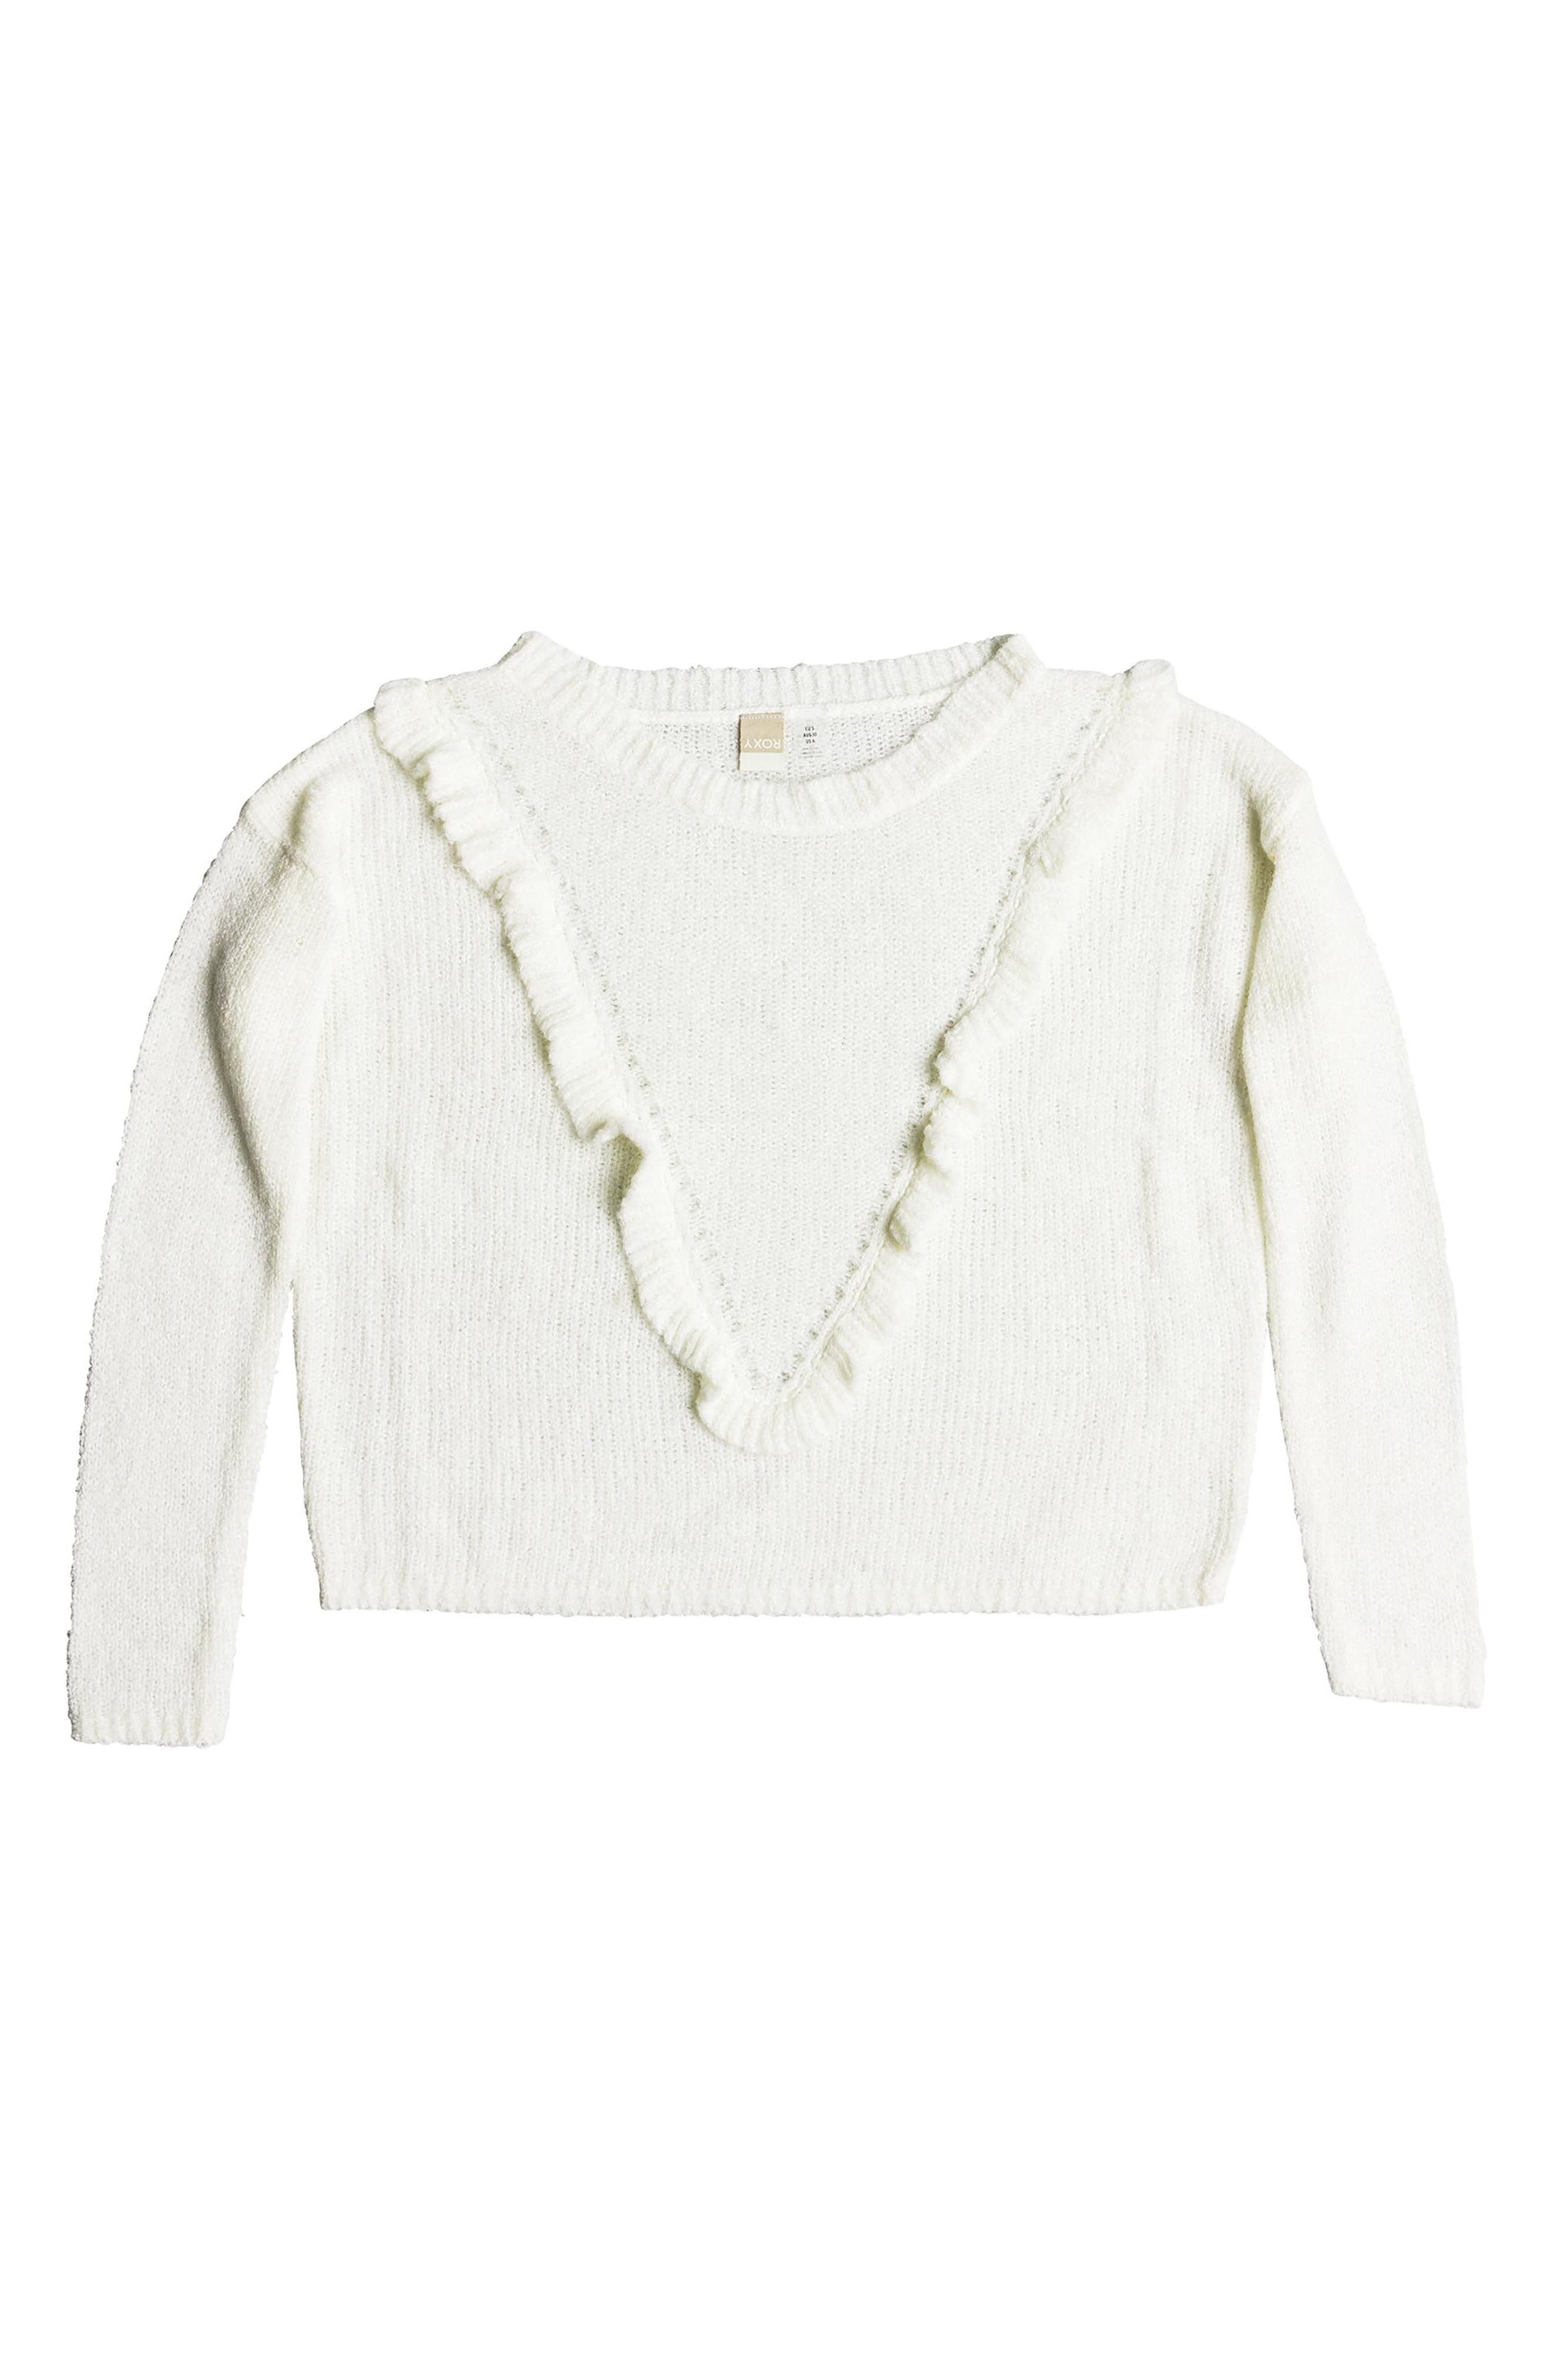 One Fine Stay Ruffle Sweater,                             Alternate thumbnail 5, color,                             MARSHMALLOW